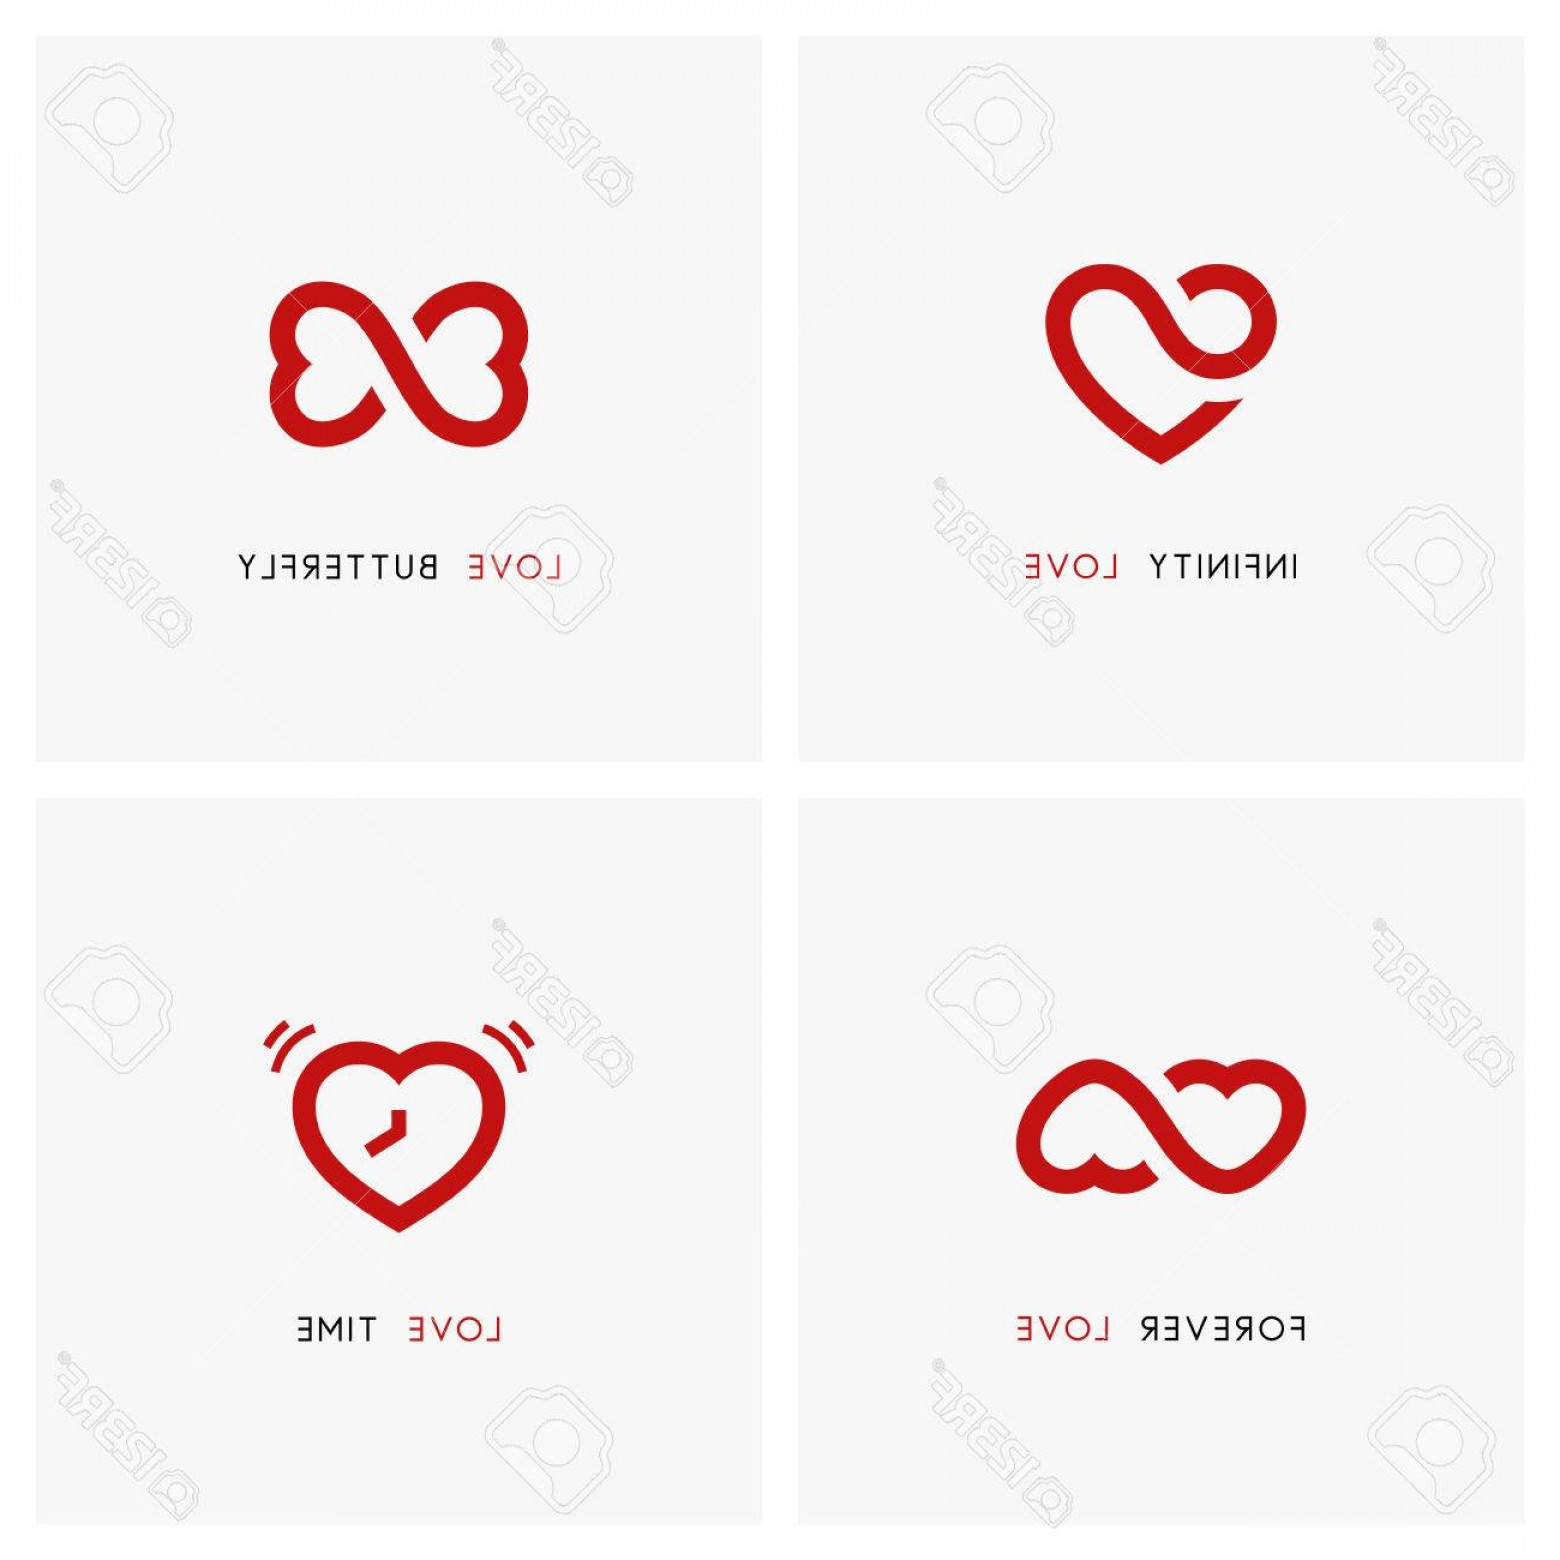 Vector Infinity Symbol Hearts: Photostock Vector Love Vector Logo Set Red Hearts Time And Infinity Symbols